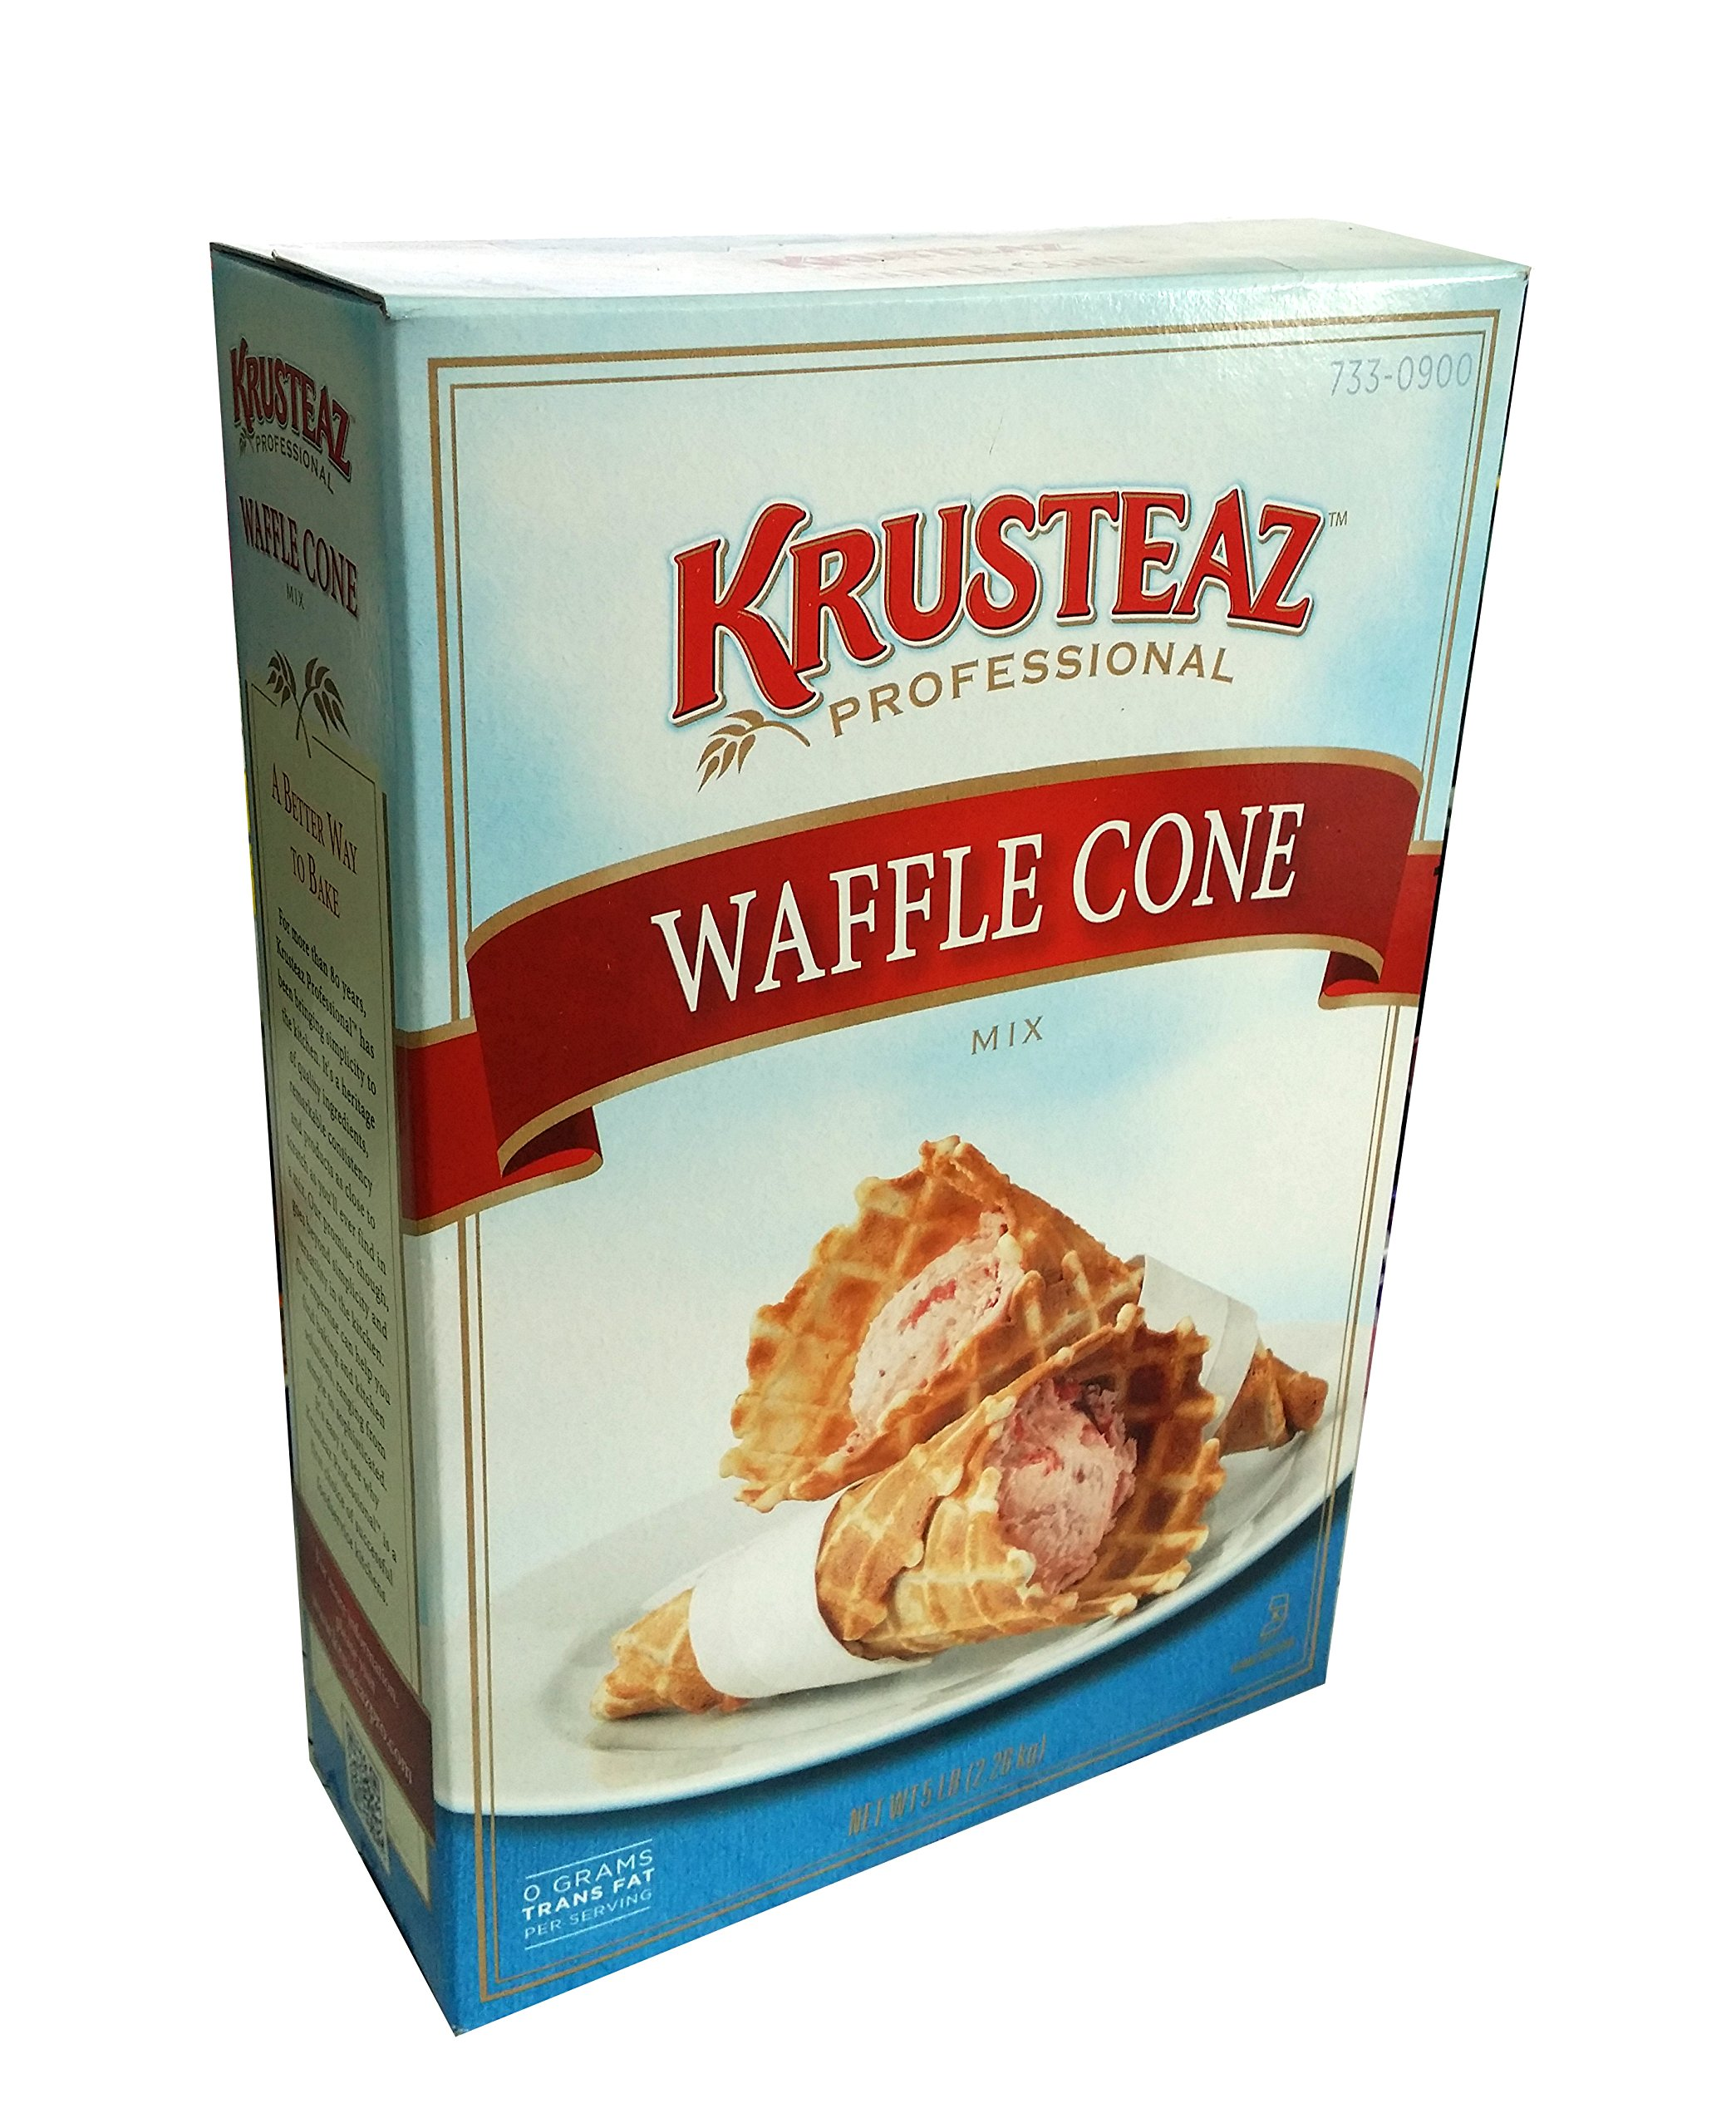 Krusteaz Professional Waffle Cone Mix - 5 lbs - One Box